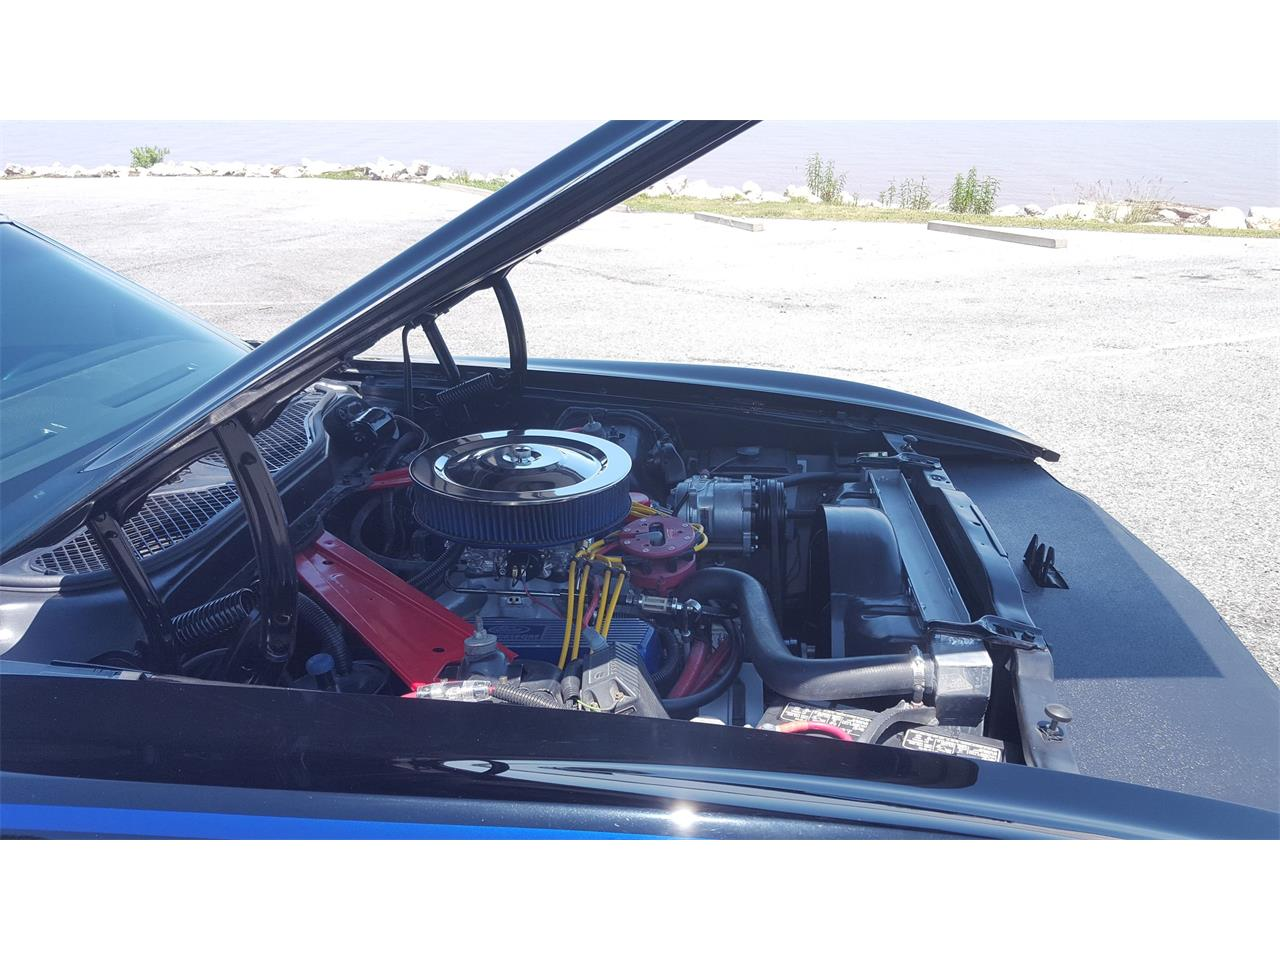 Large Picture of 1973 Mustang Mach 1 Offered by a Private Seller - LBYV